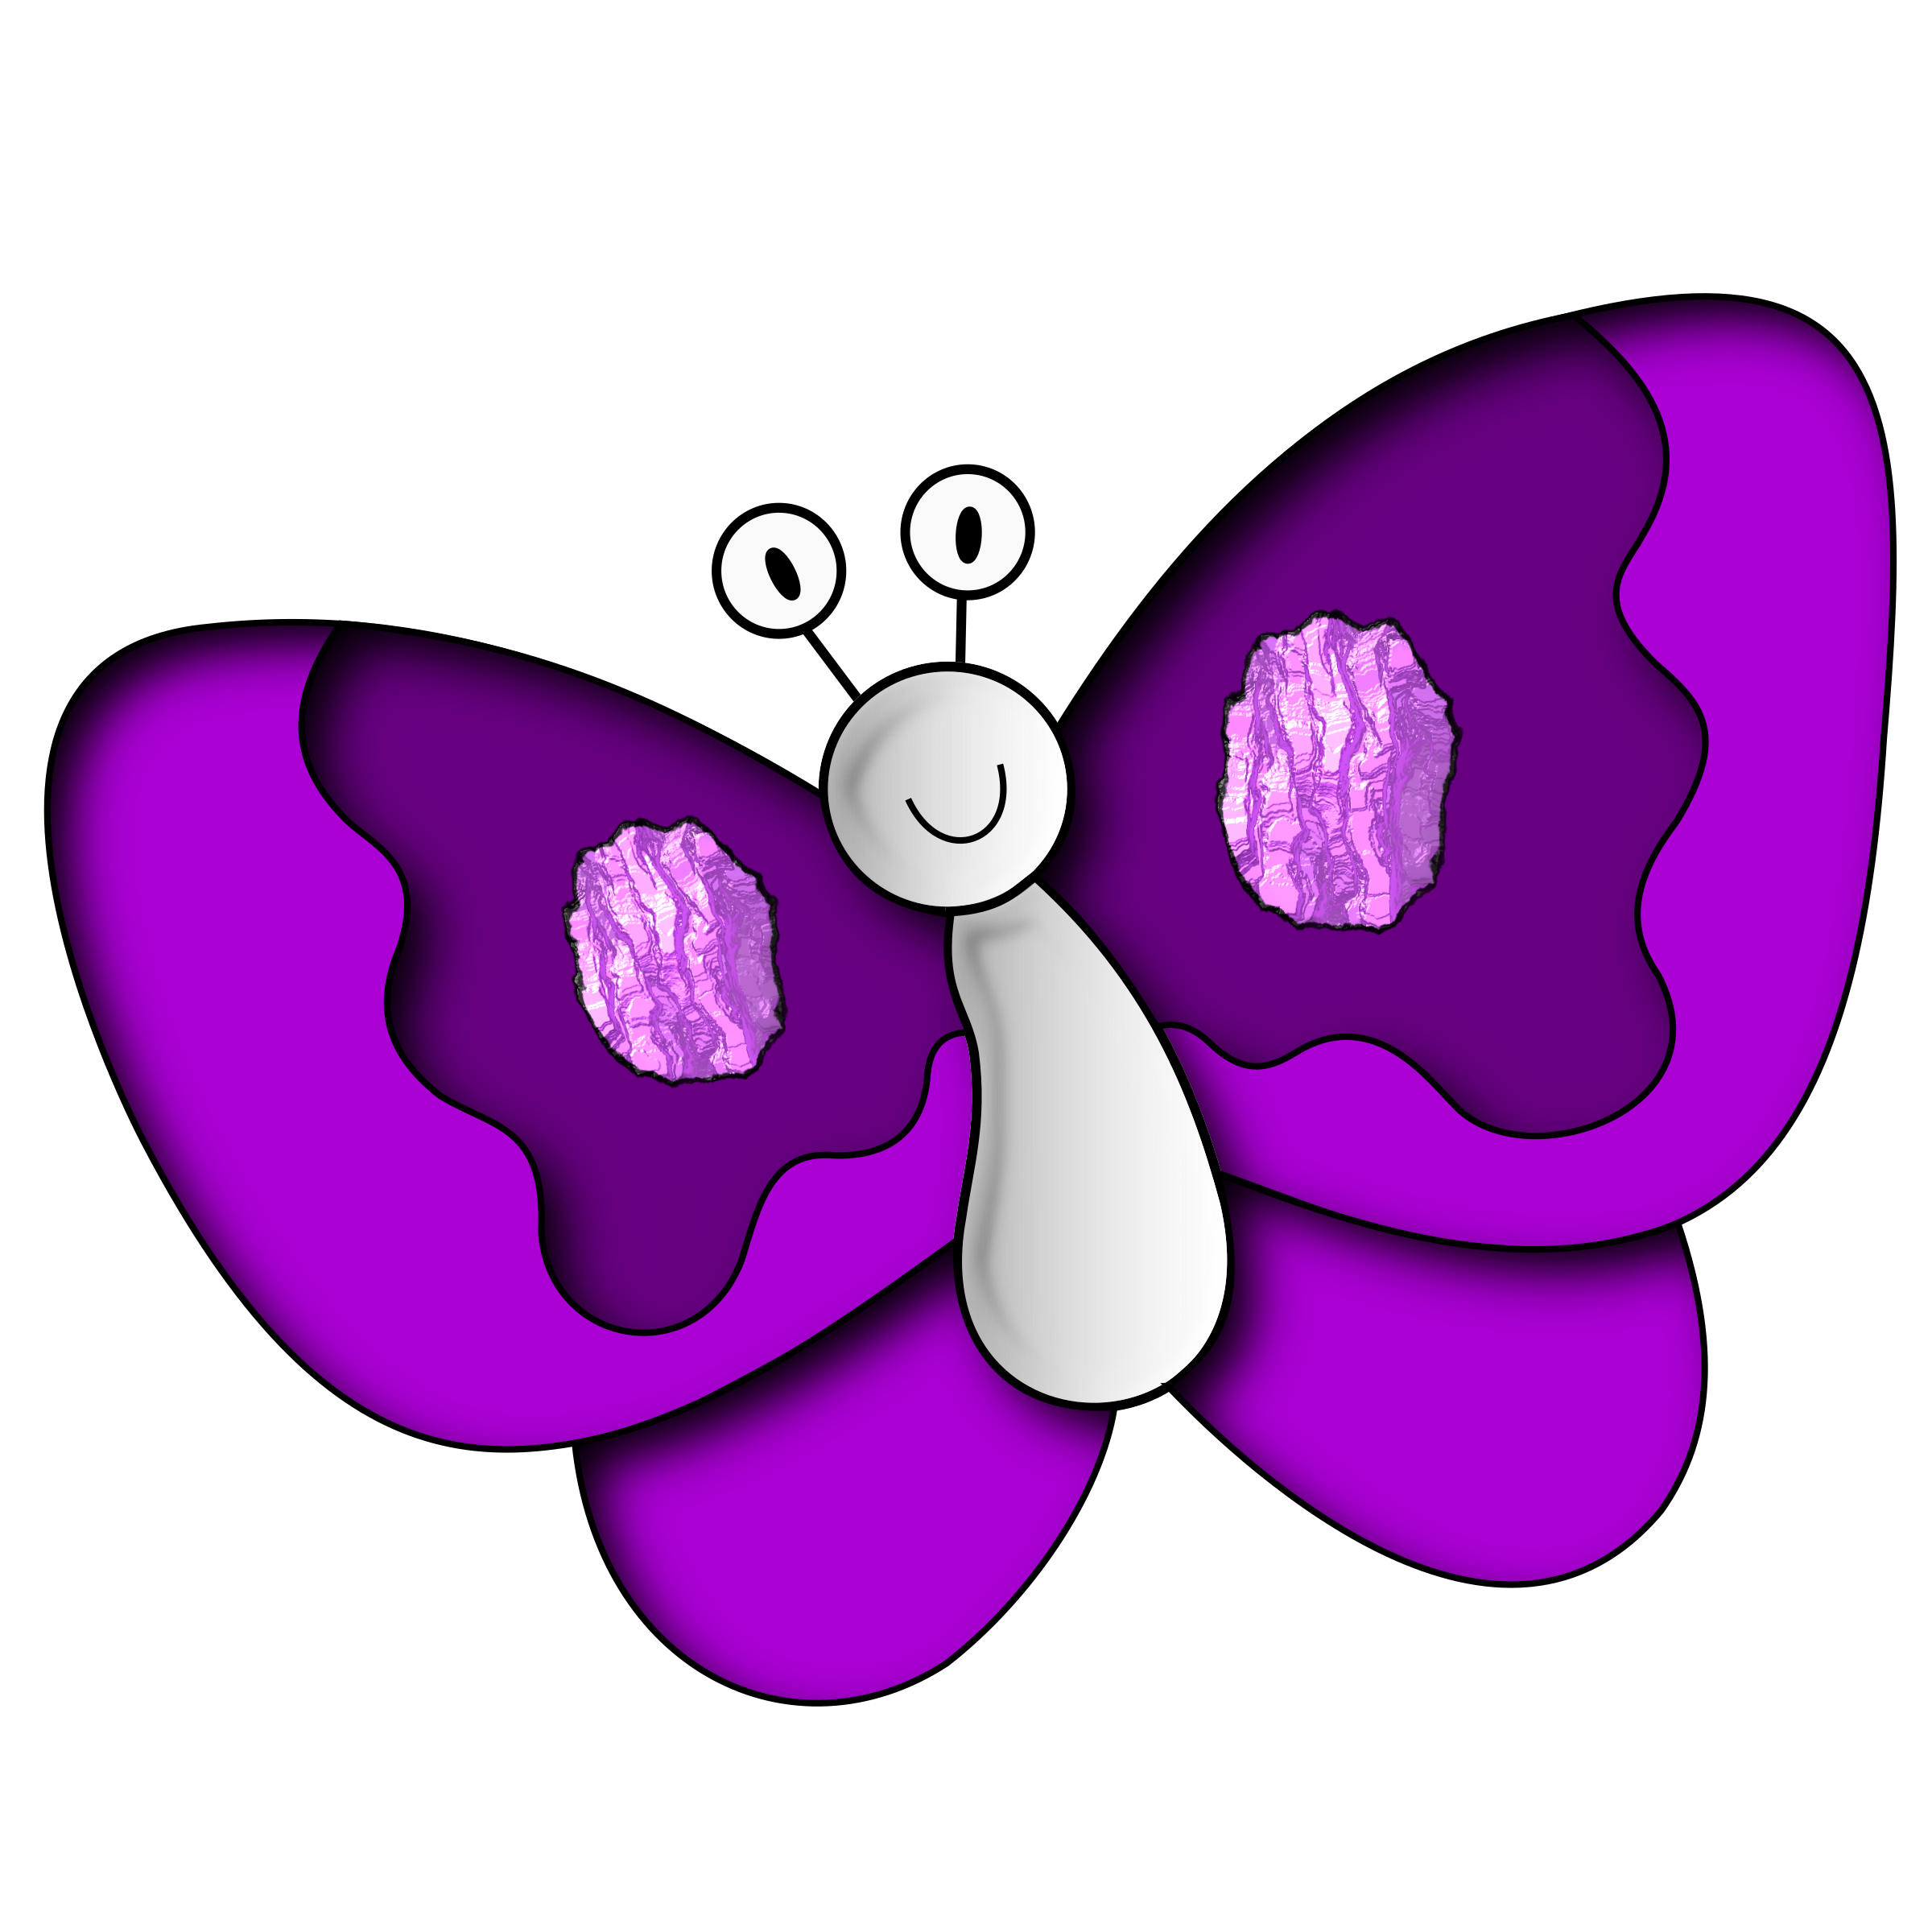 Telephone clipart purple. Butterfly big image png